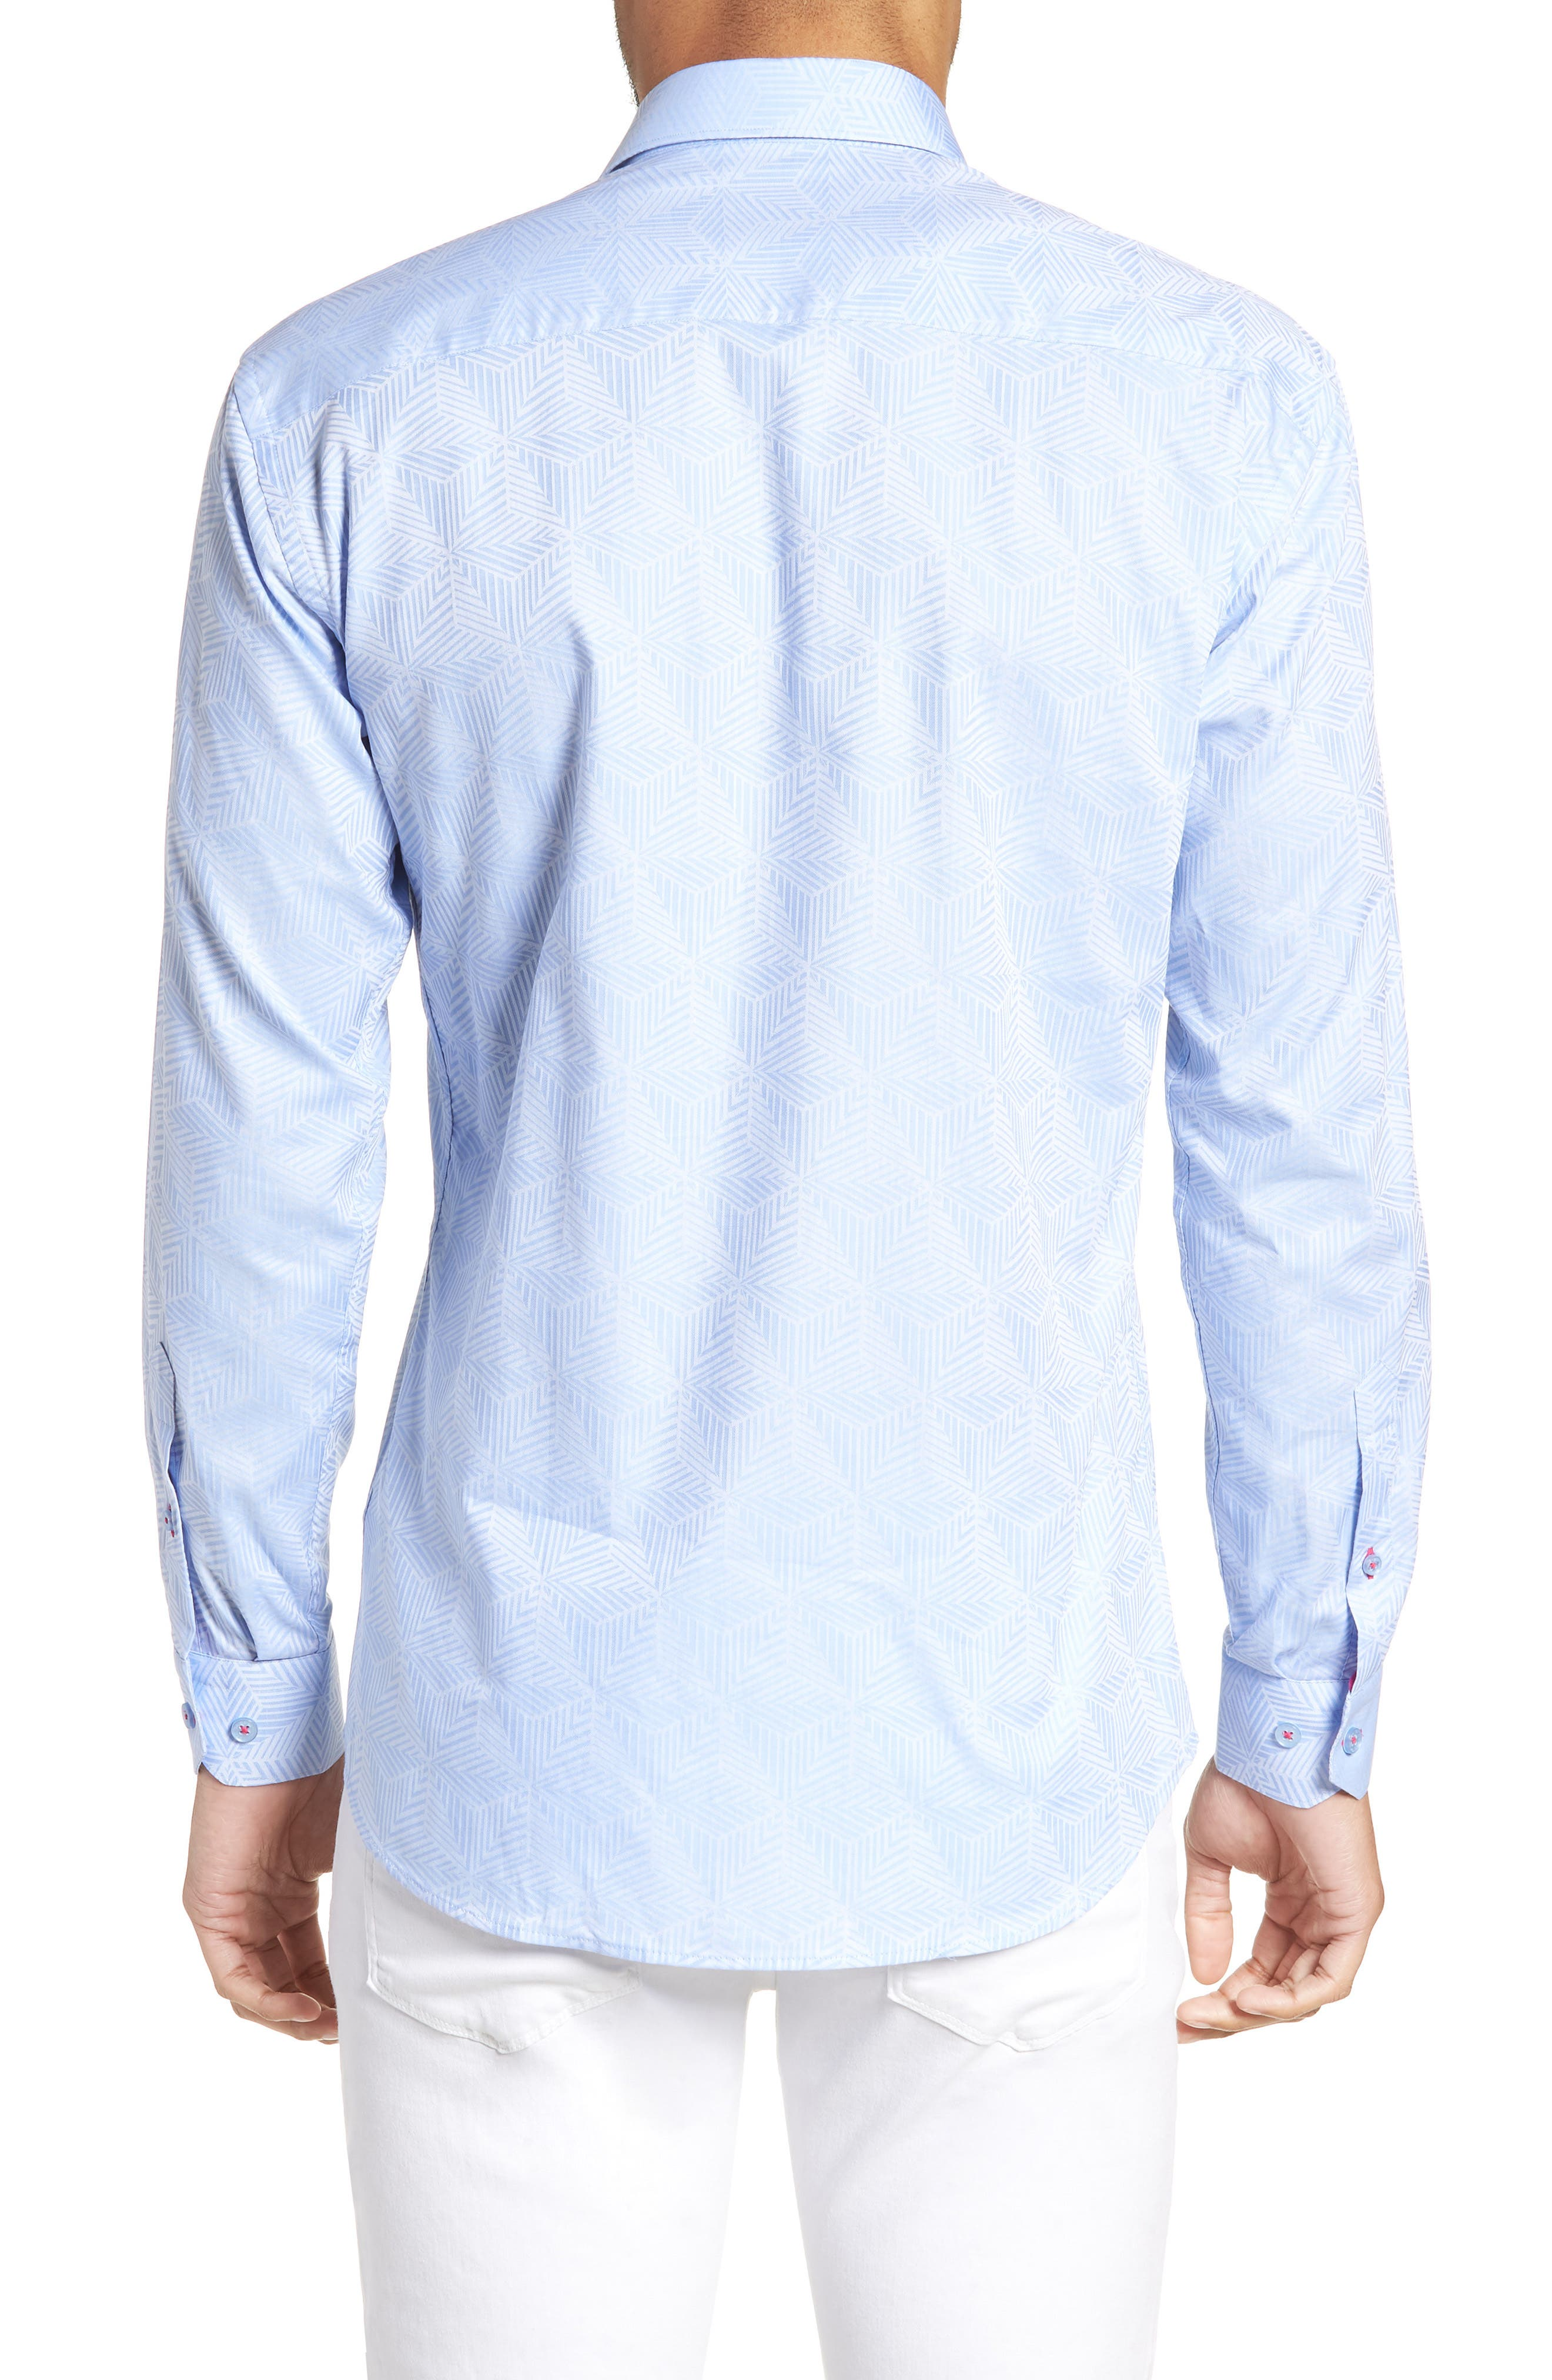 Luxor Cycad Sport Shirt,                             Alternate thumbnail 3, color,                             Blue